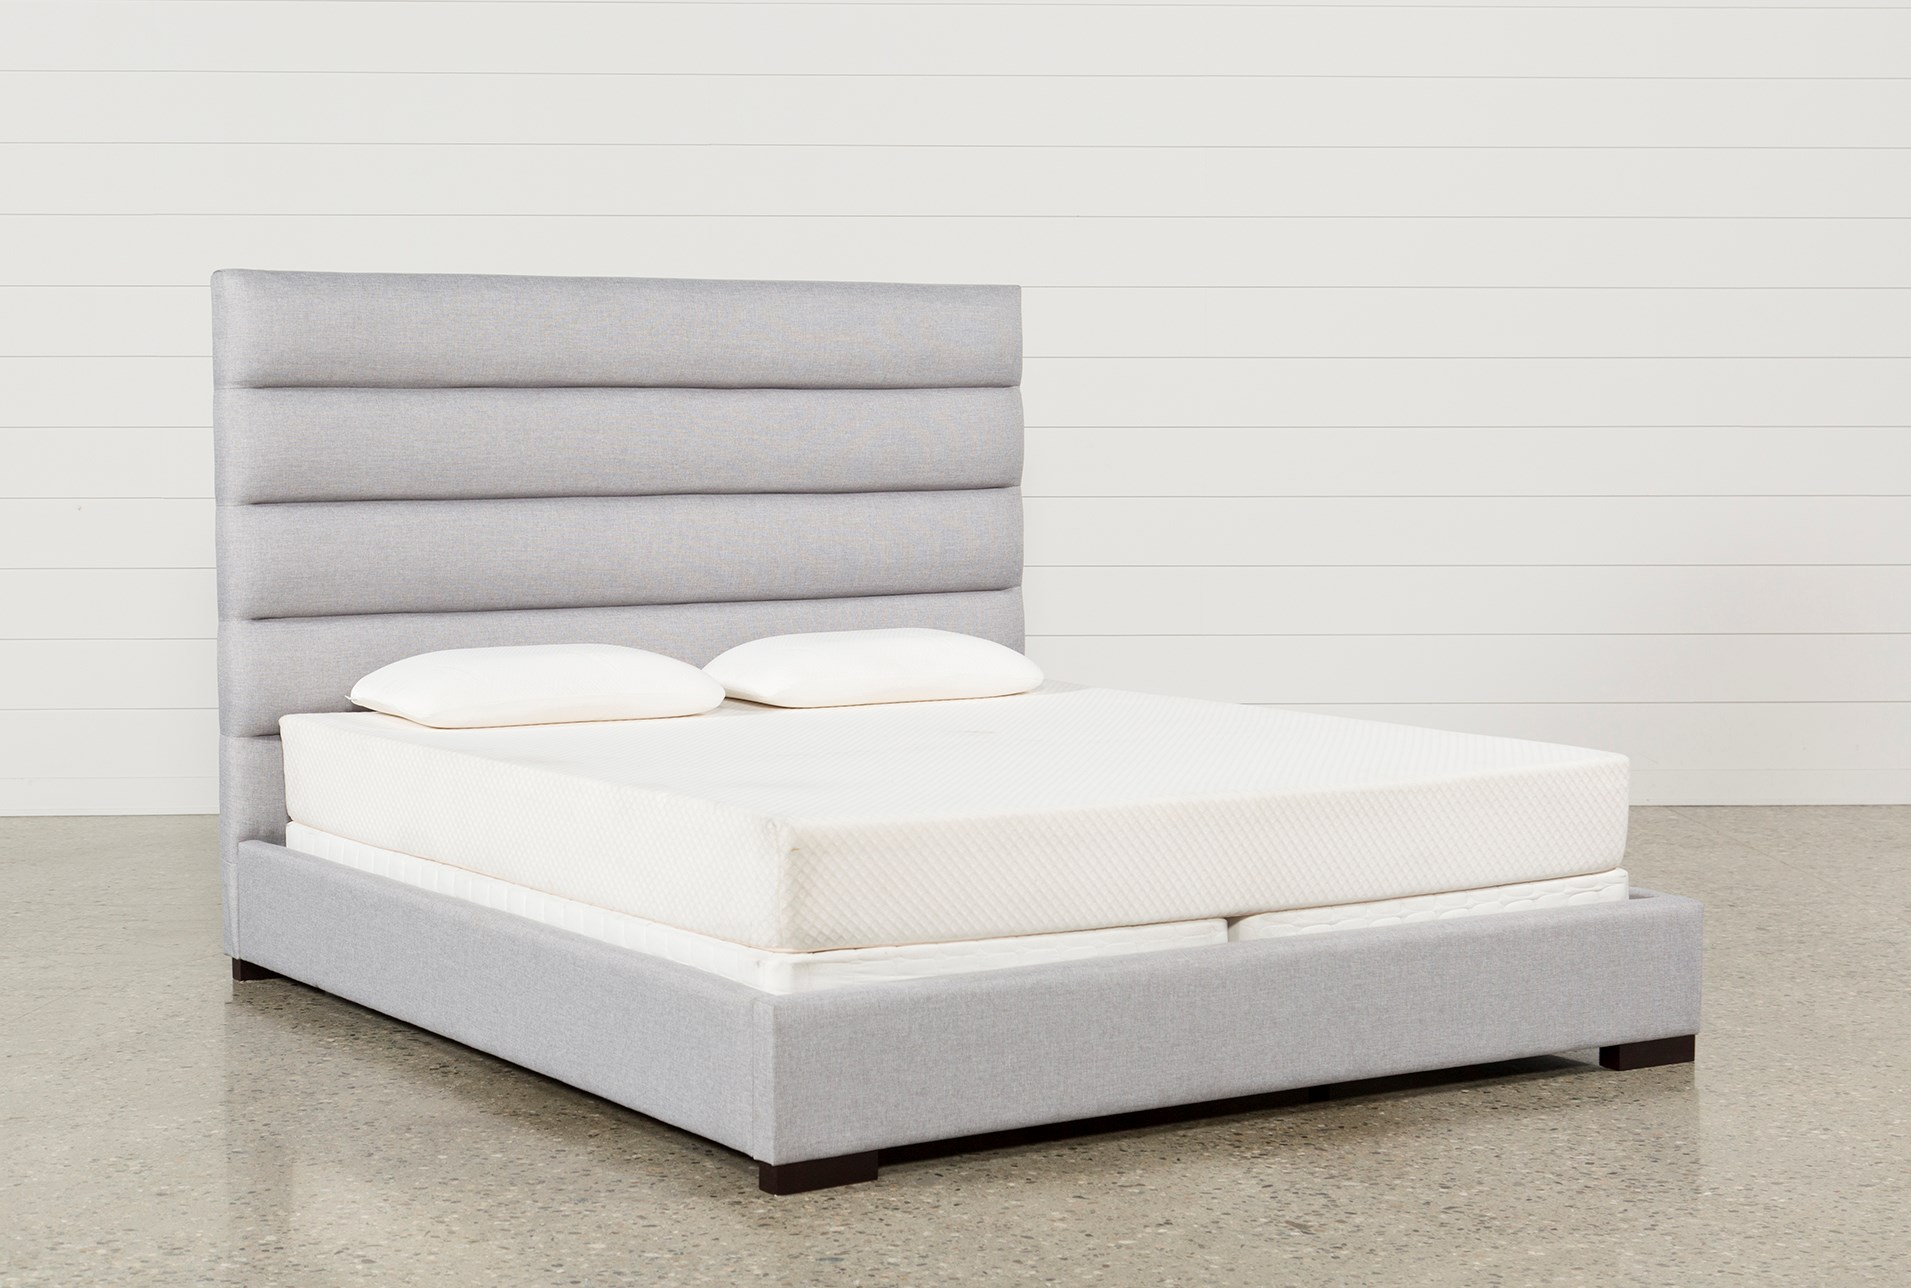 Hudson California King Upholstered Platform Bed Qty 1 Has Been Successfully Added To Your Cart